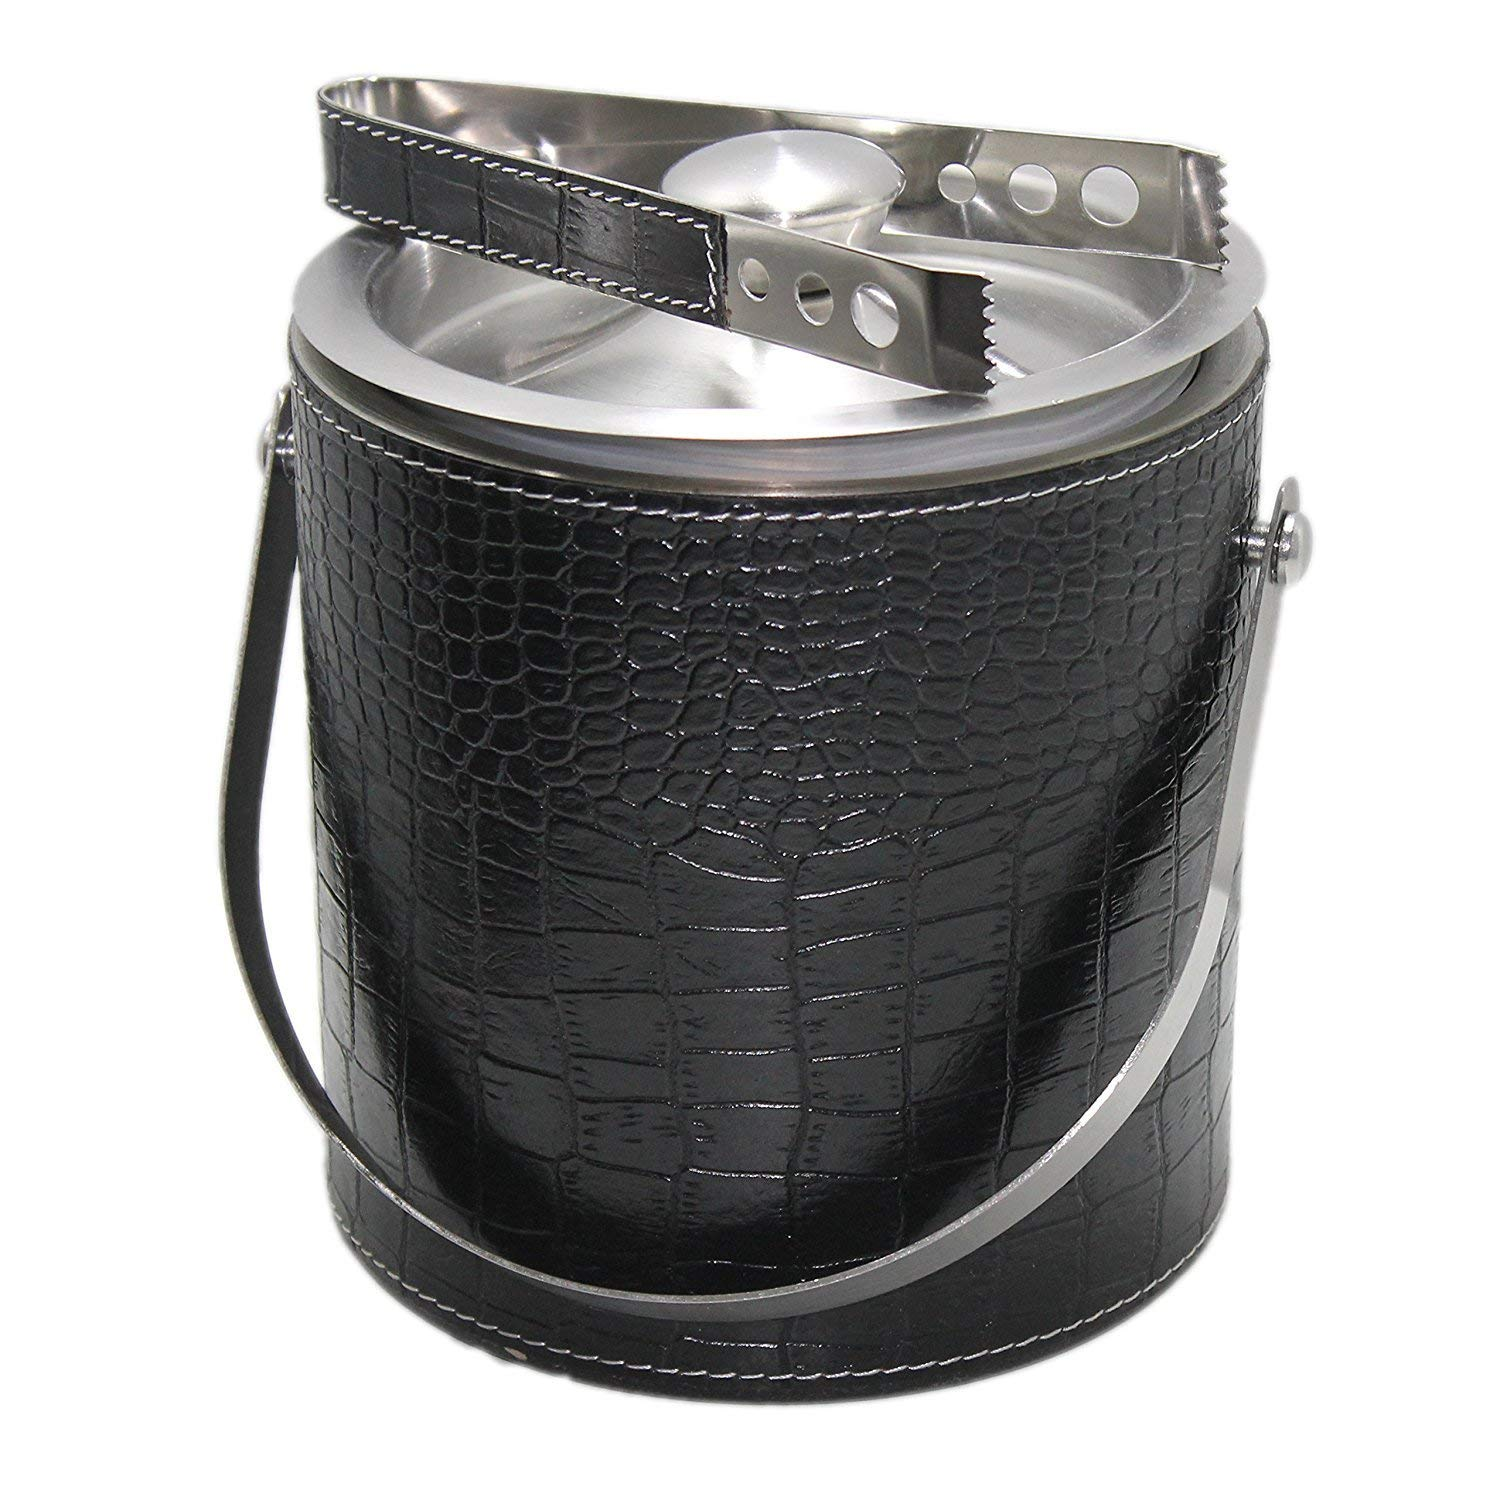 Black Leather Ice Bucket Double Wall Insulated Stainless Steel Ice Bucket Stylish with Lid of air lock waser and Portable Handle With Hand Work leather grip Ice Tungus